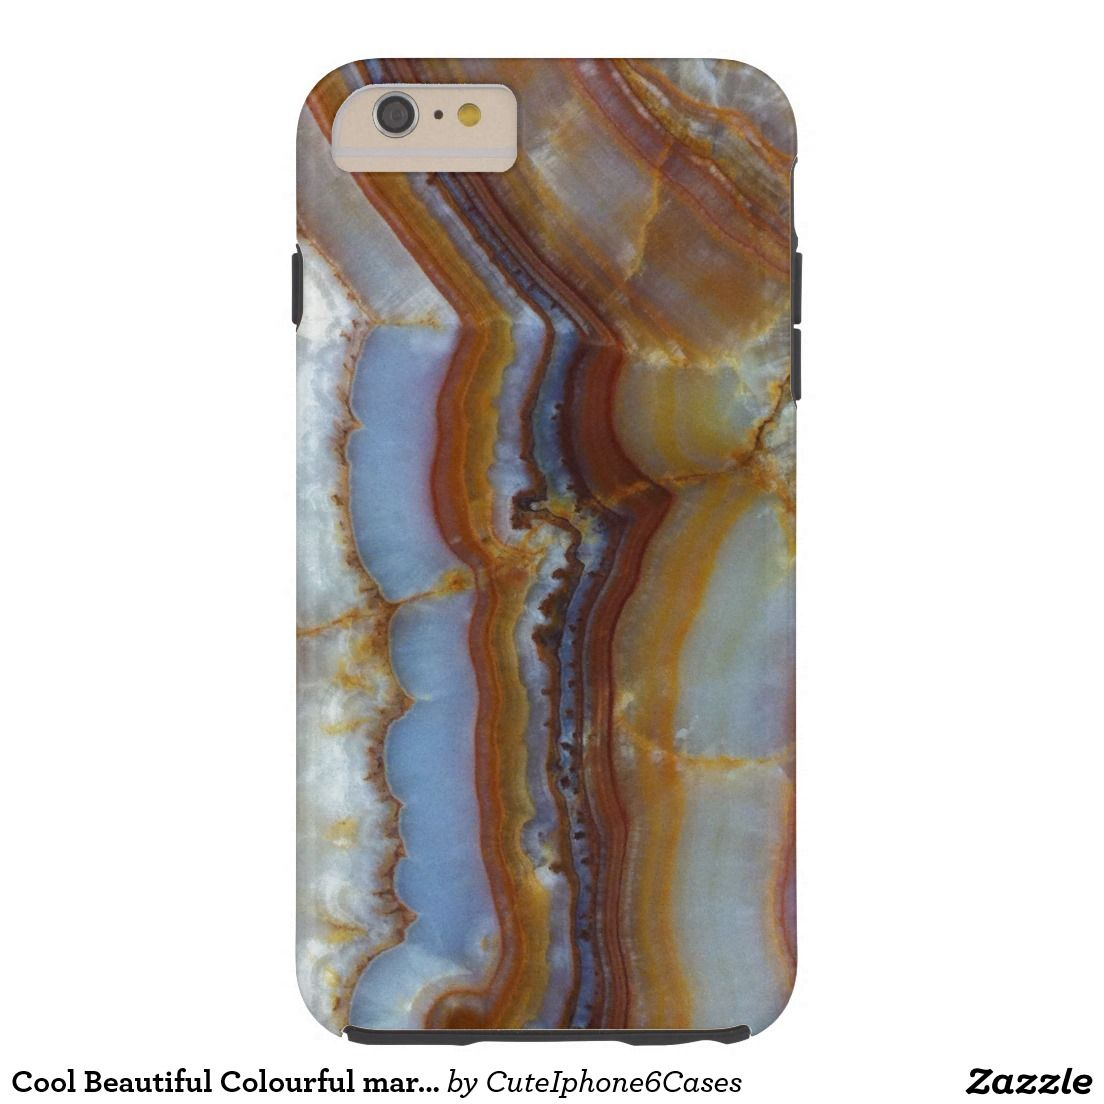 Cool Beautiful Colourful marble pattern Case Cover